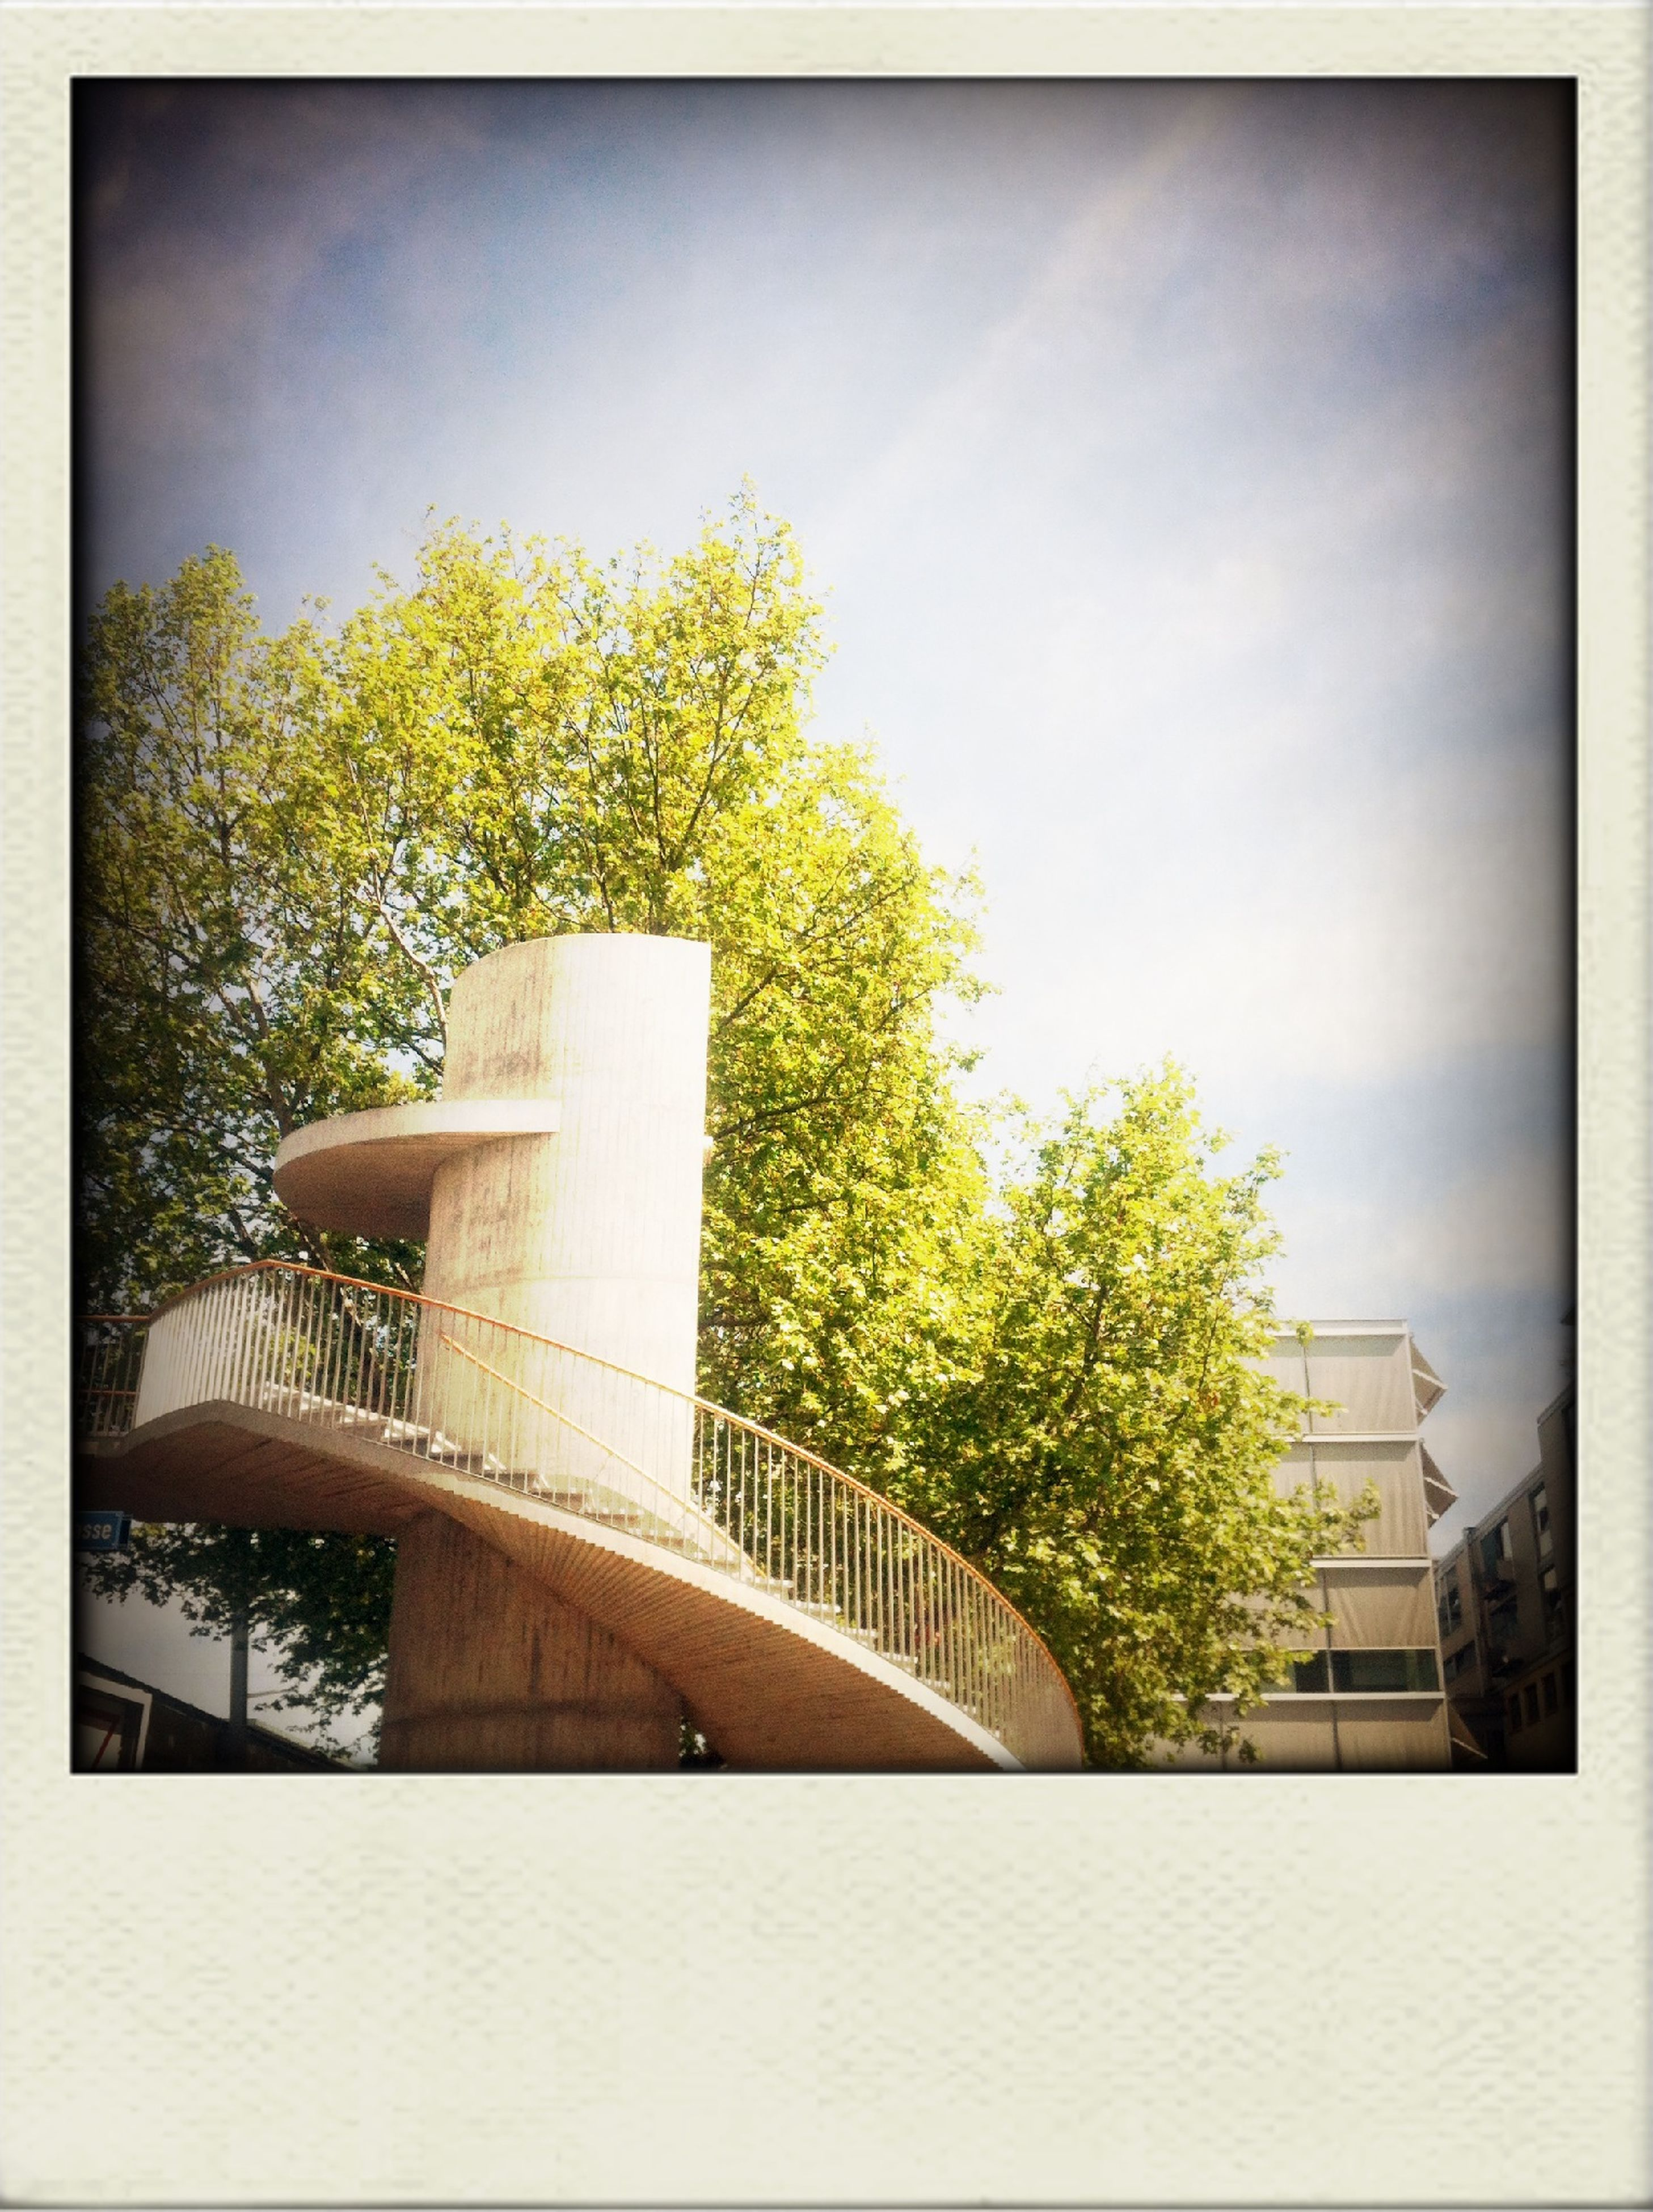 transfer print, auto post production filter, tree, built structure, architecture, low angle view, building exterior, growth, sky, day, no people, outdoors, plant, railing, nature, sunlight, green color, steps, clear sky, house